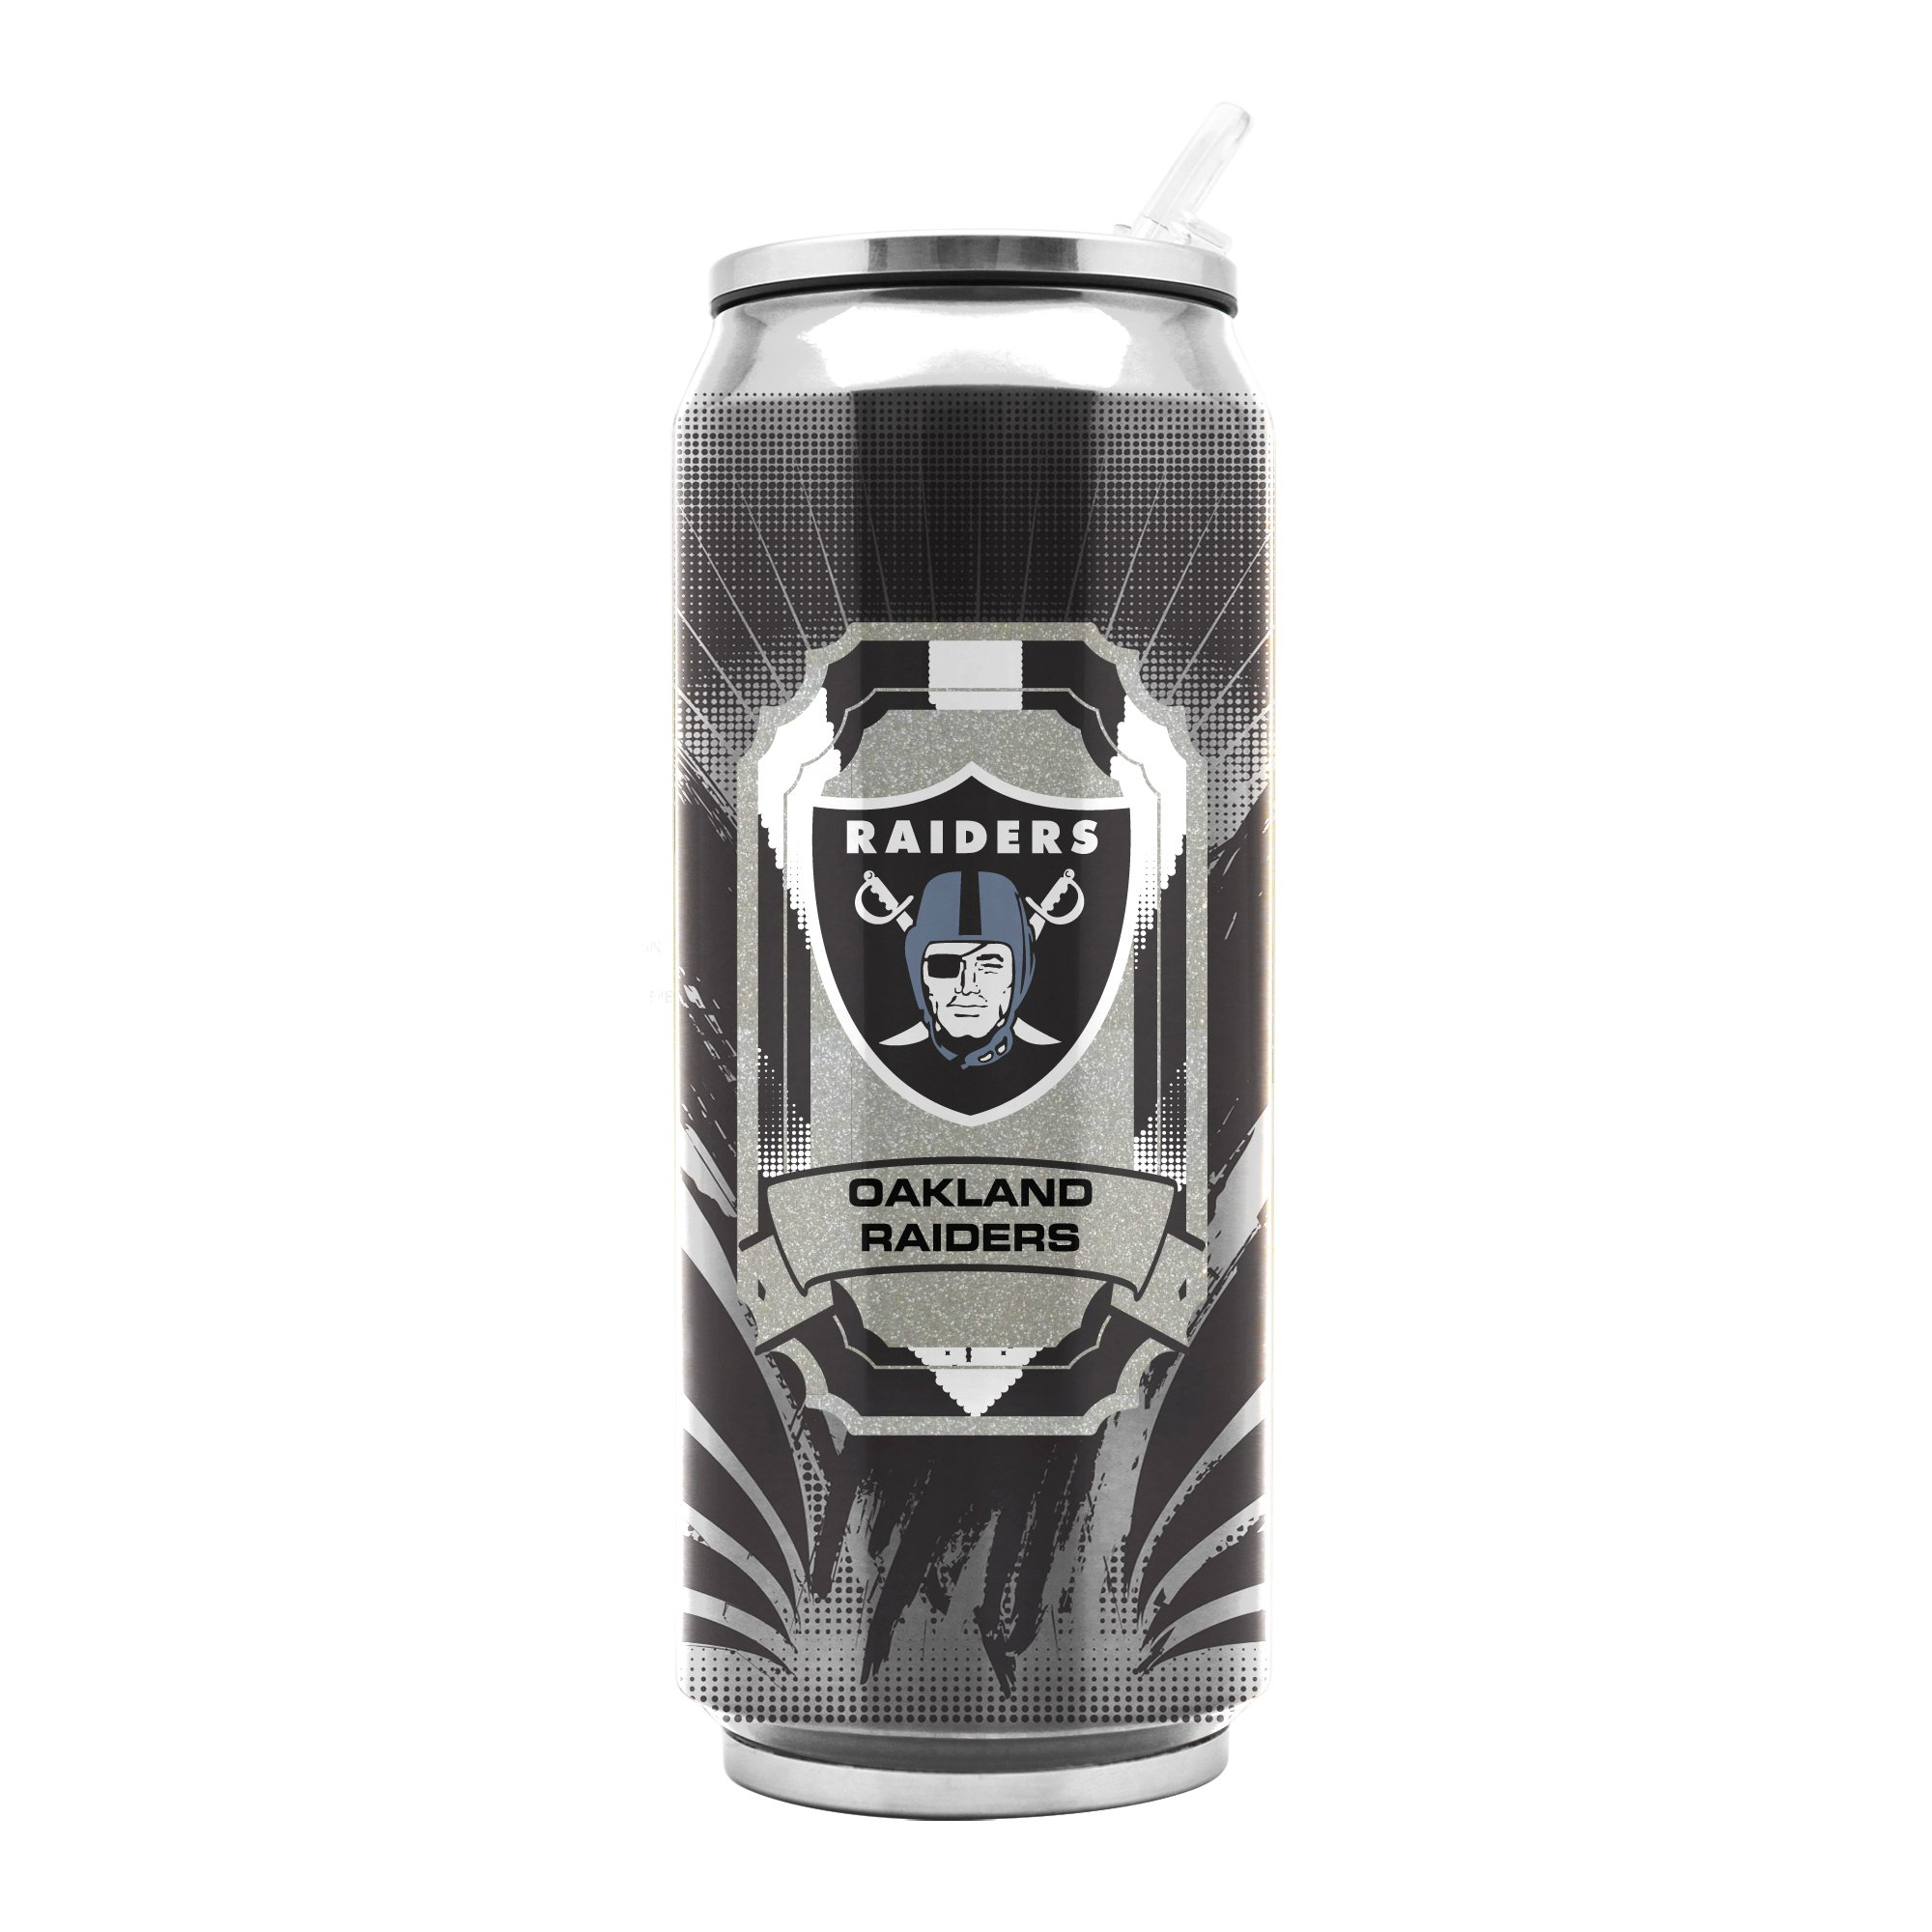 NFL Oakland Raiders 16oz Double Wall Stainless Steel Thermocan by Duck House